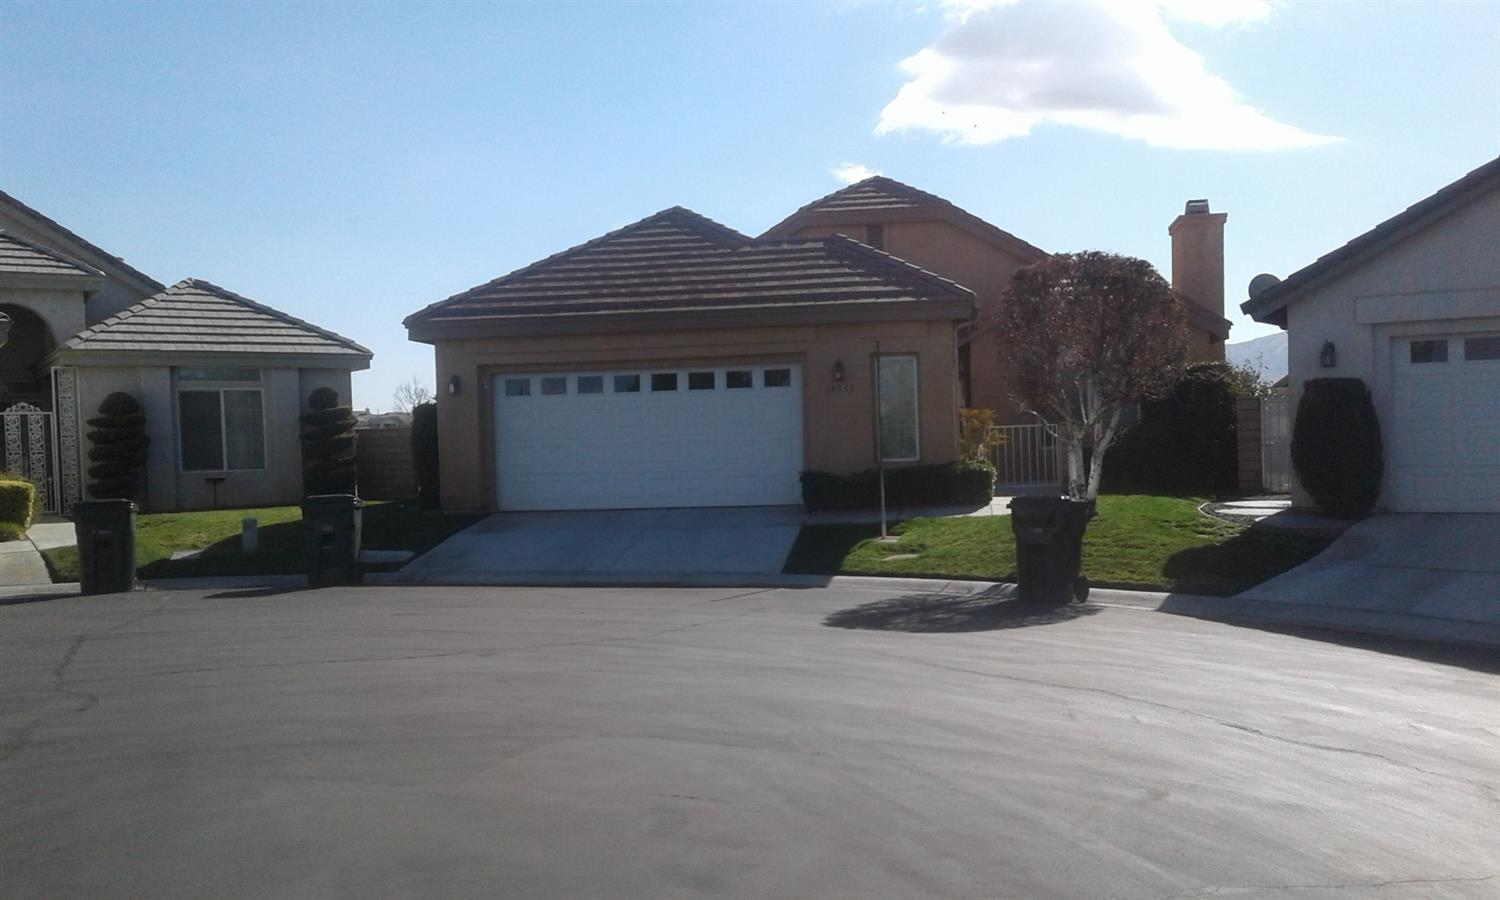 All homes for sale 55places 19553 northstar court apple valley ca 92308 malvernweather Choice Image